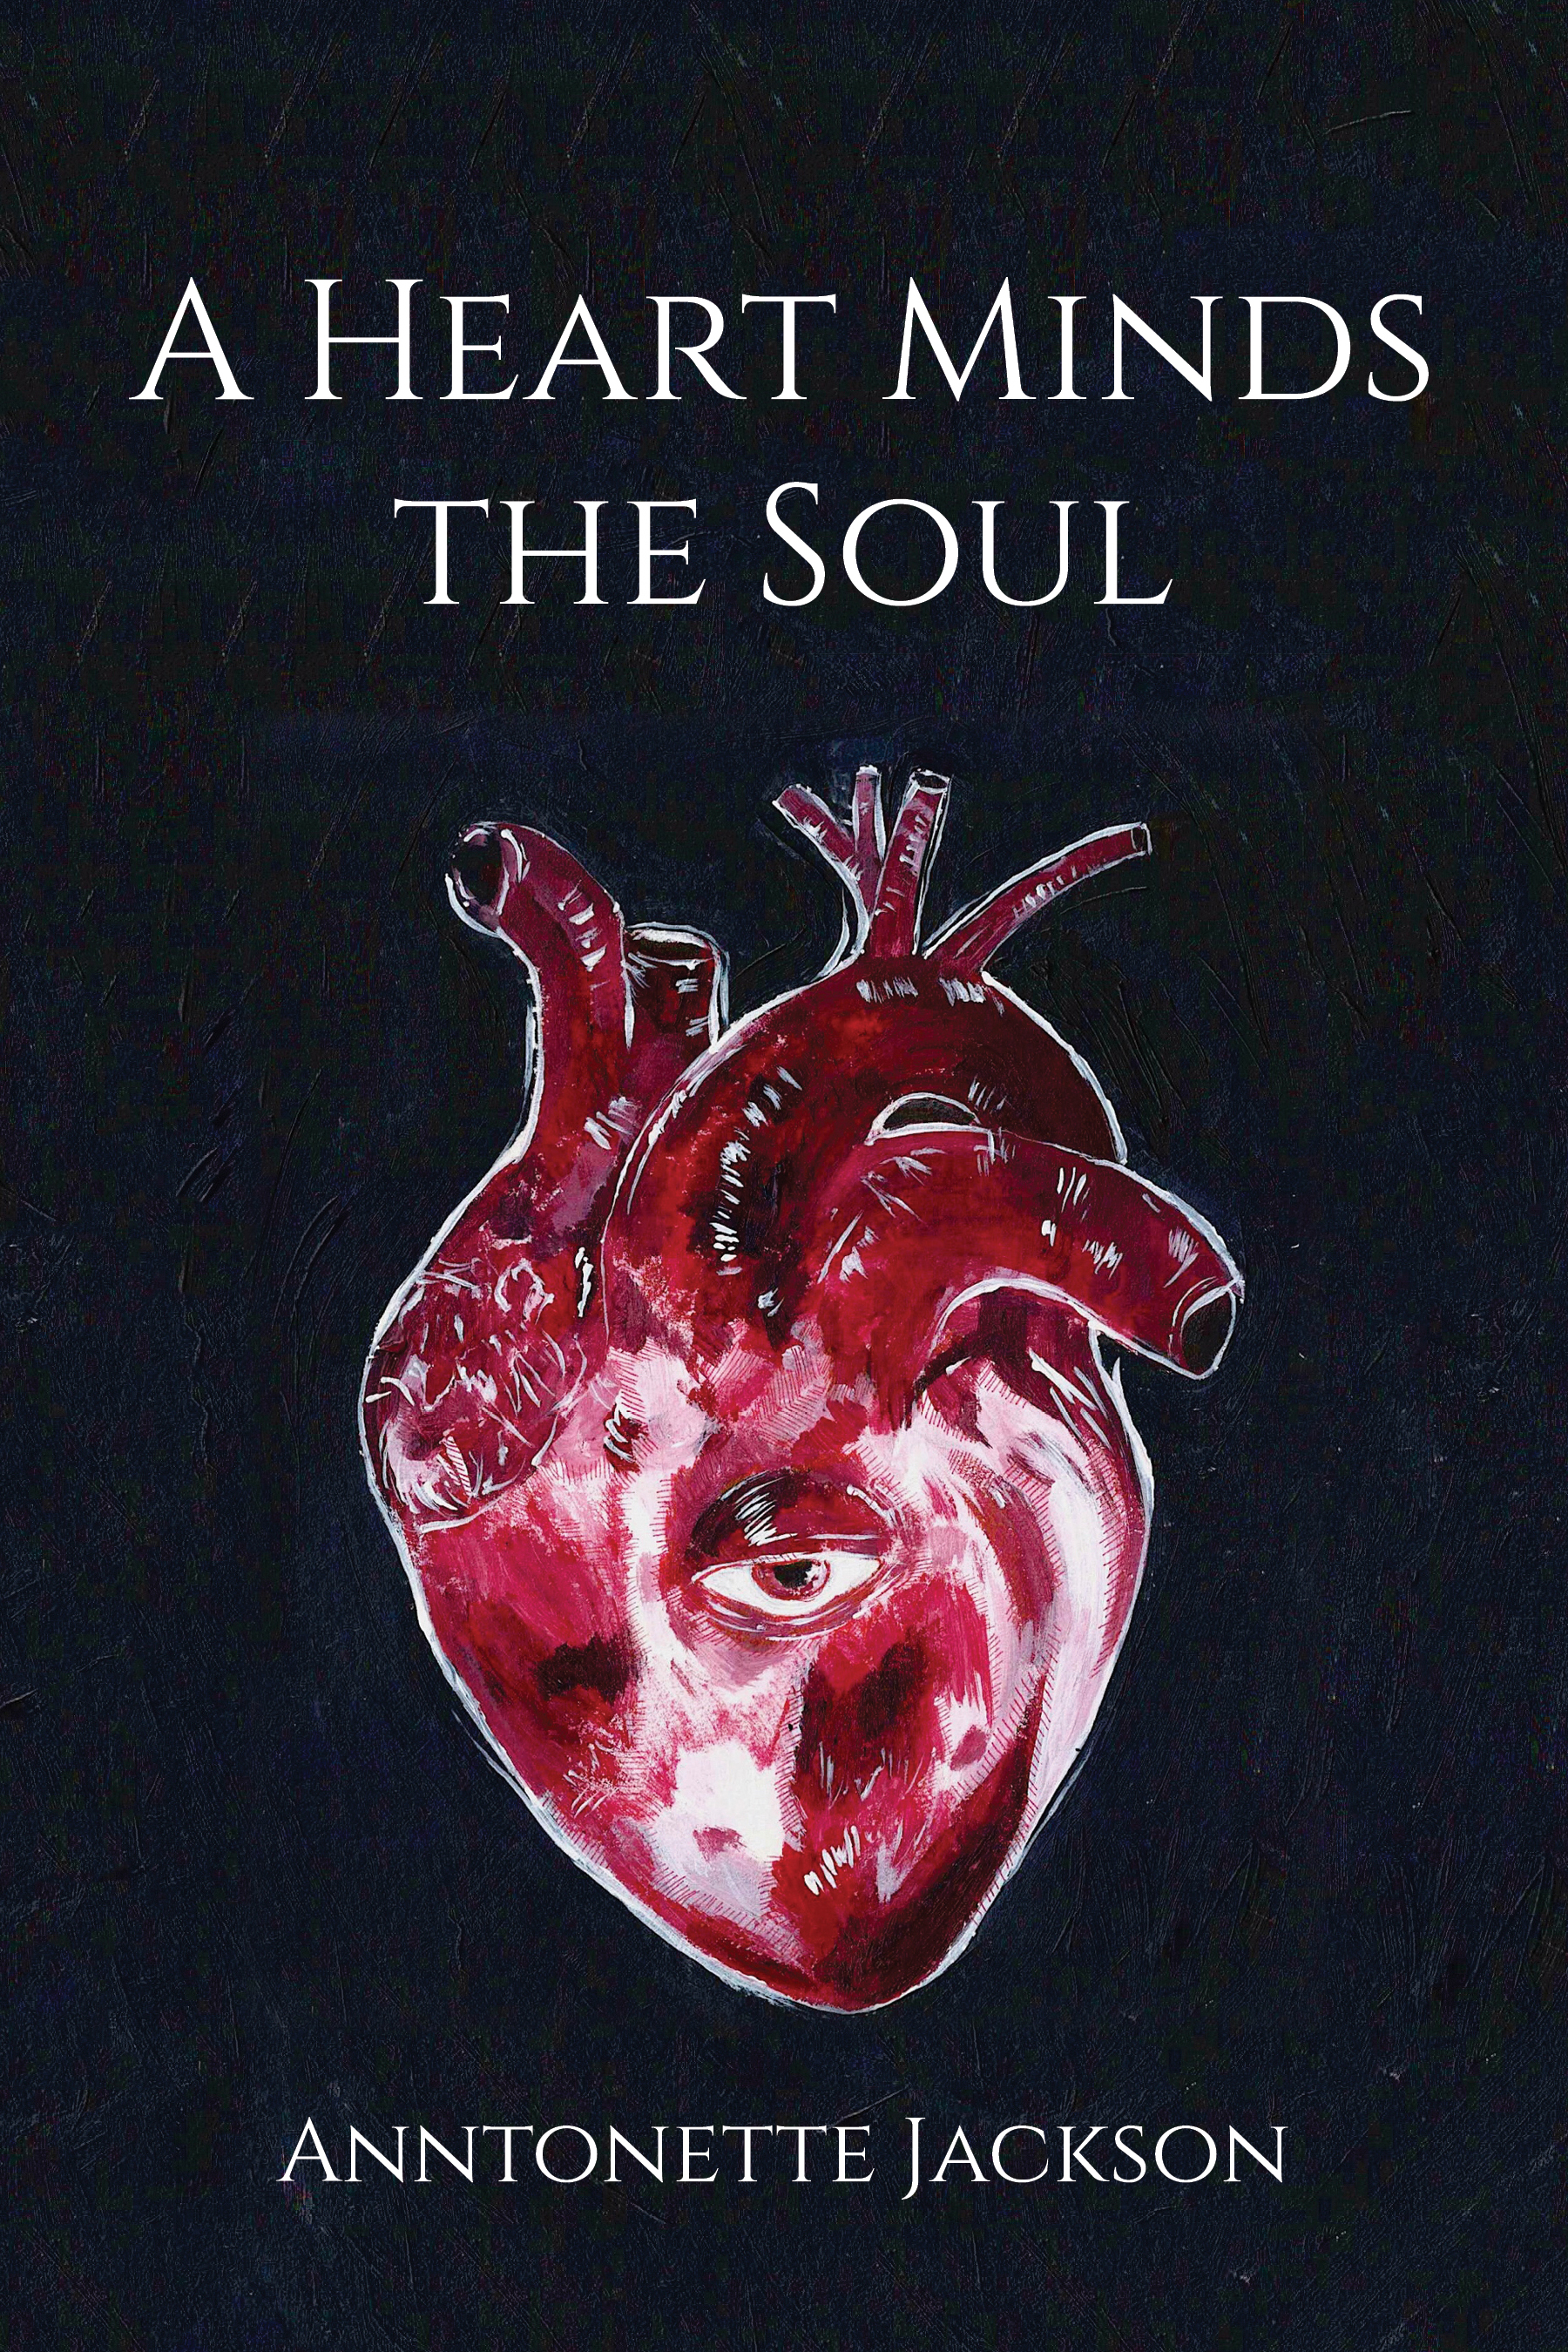 A Heart Minds the Soul by Anntonette Jackson